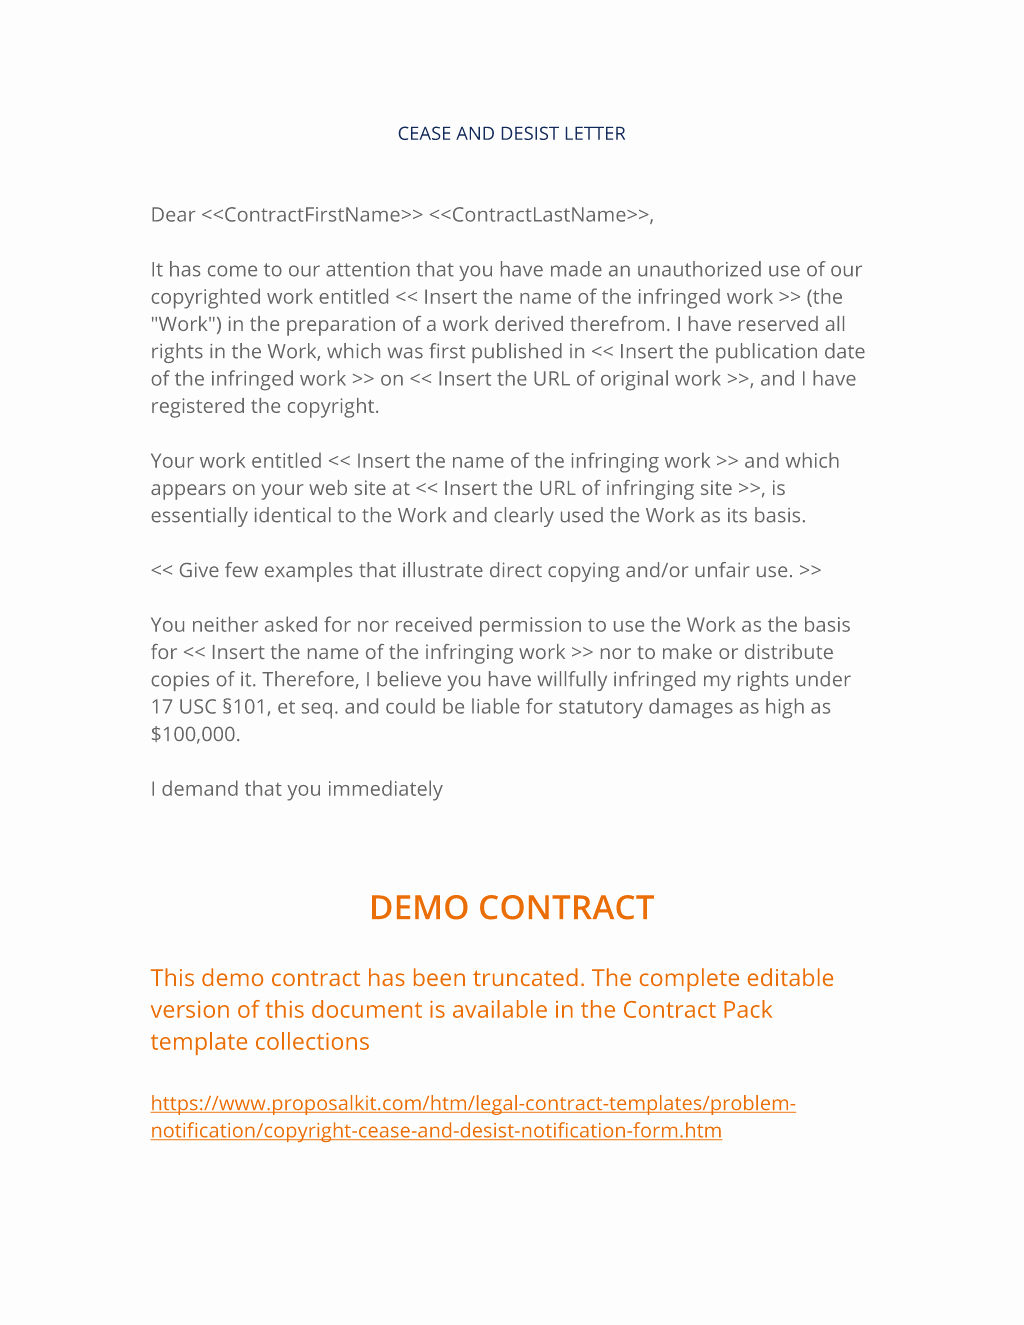 Cease and Desist Copyright Lovely Copyright Cease and Desist Notification form 3 Easy Steps